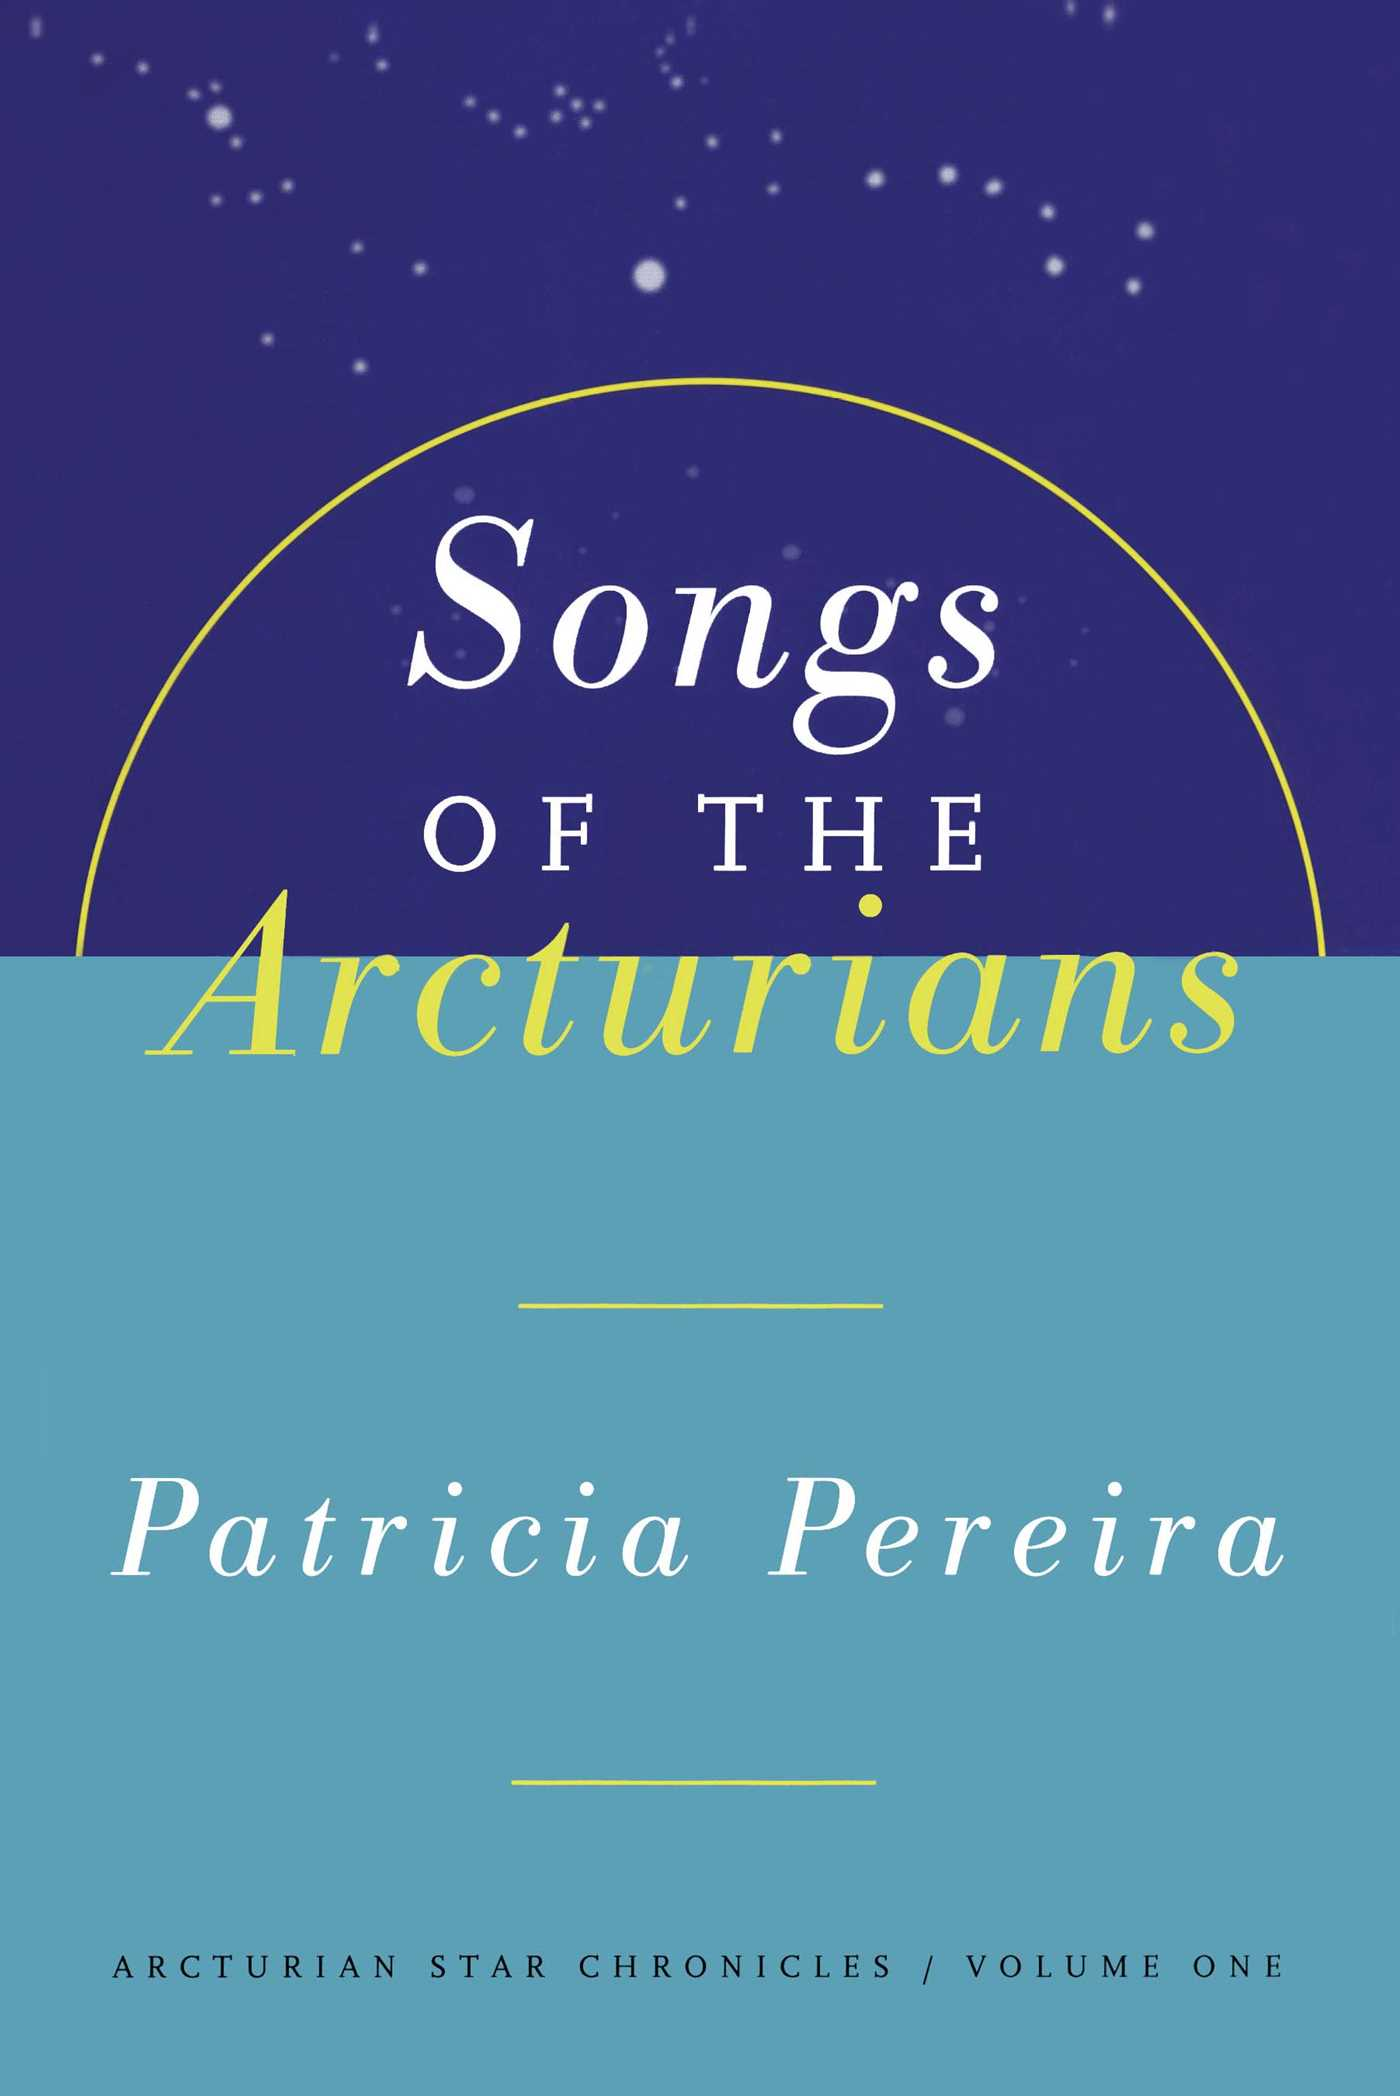 Songs of the arcturians 9781885223432 hr